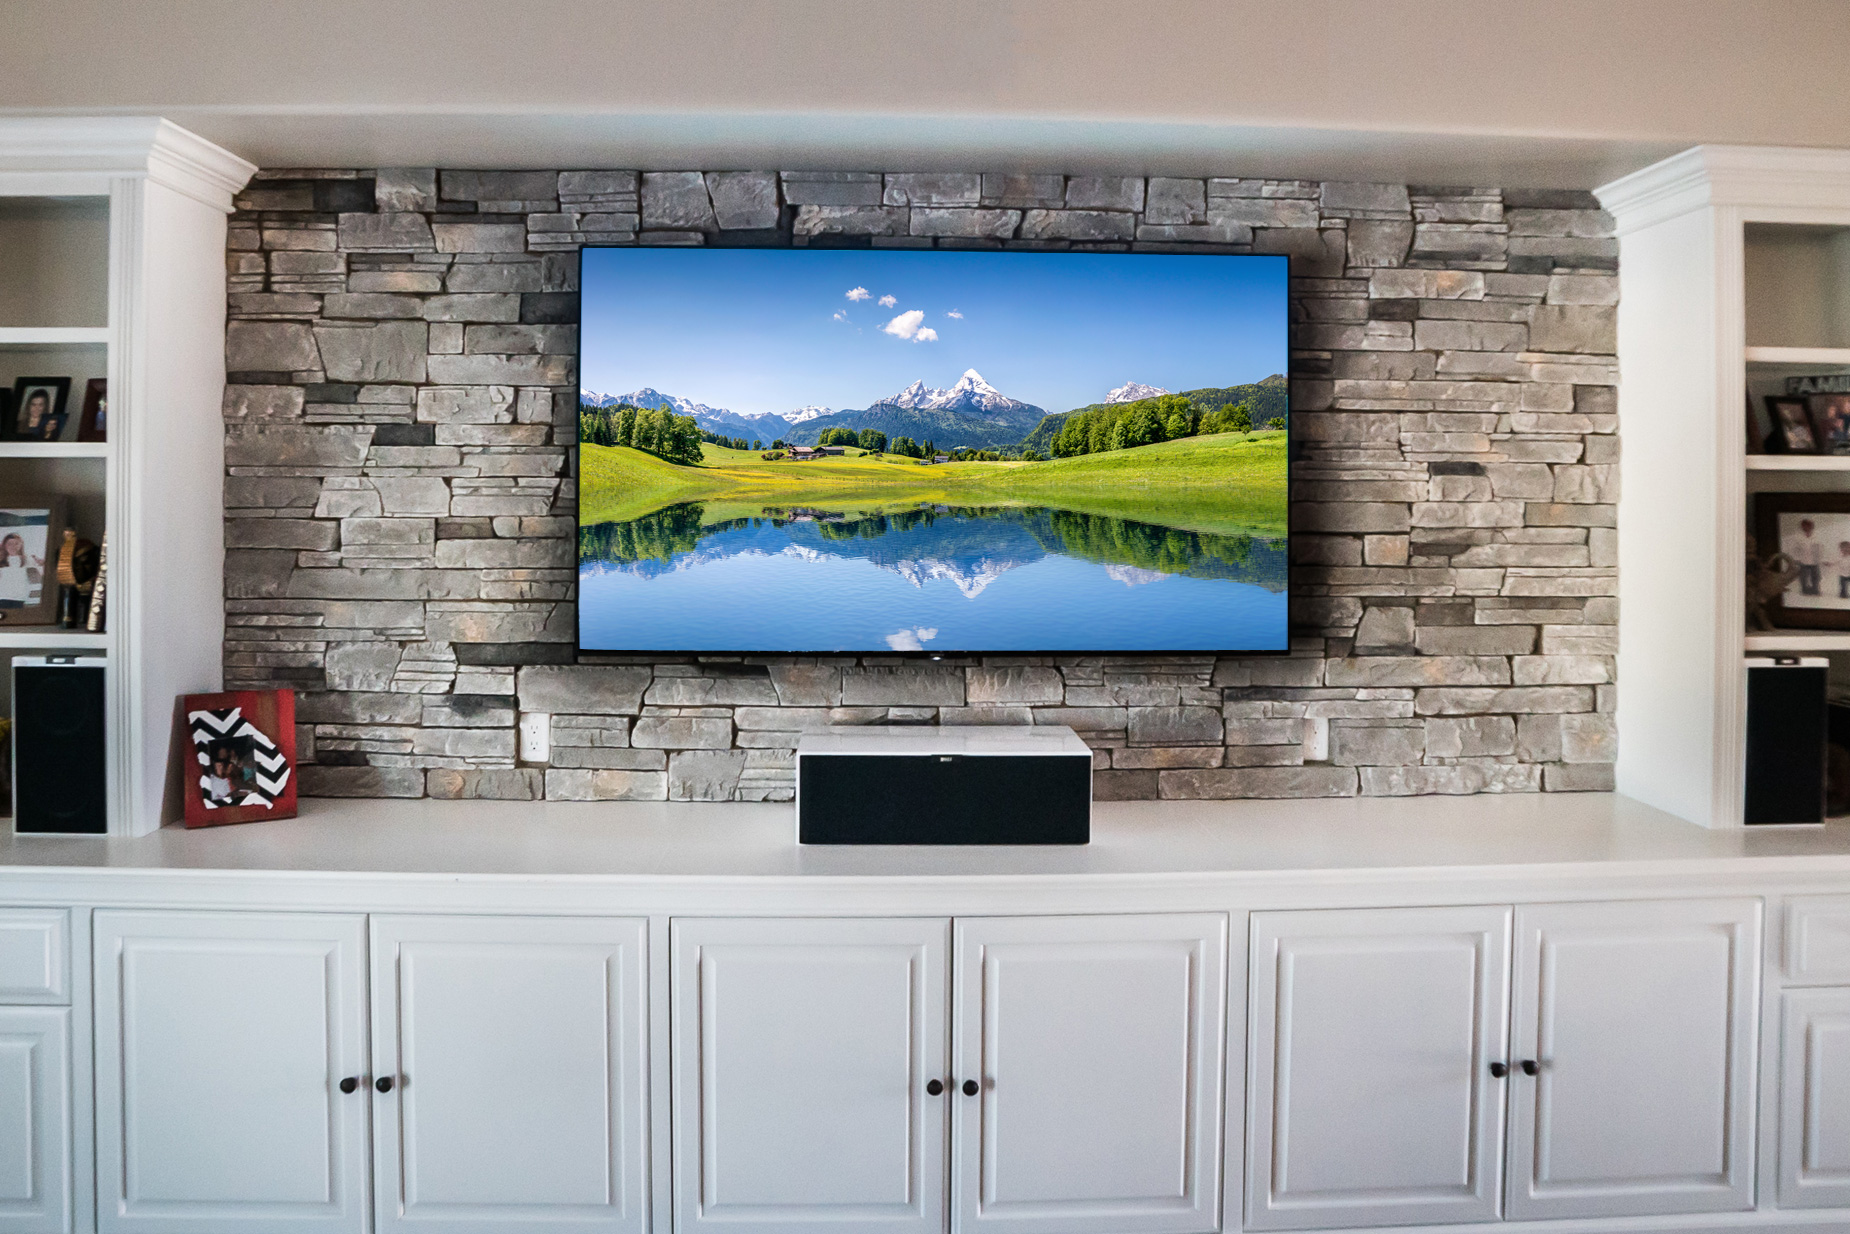 How To Upgrade To The New 4K HDR Home Theater Experience